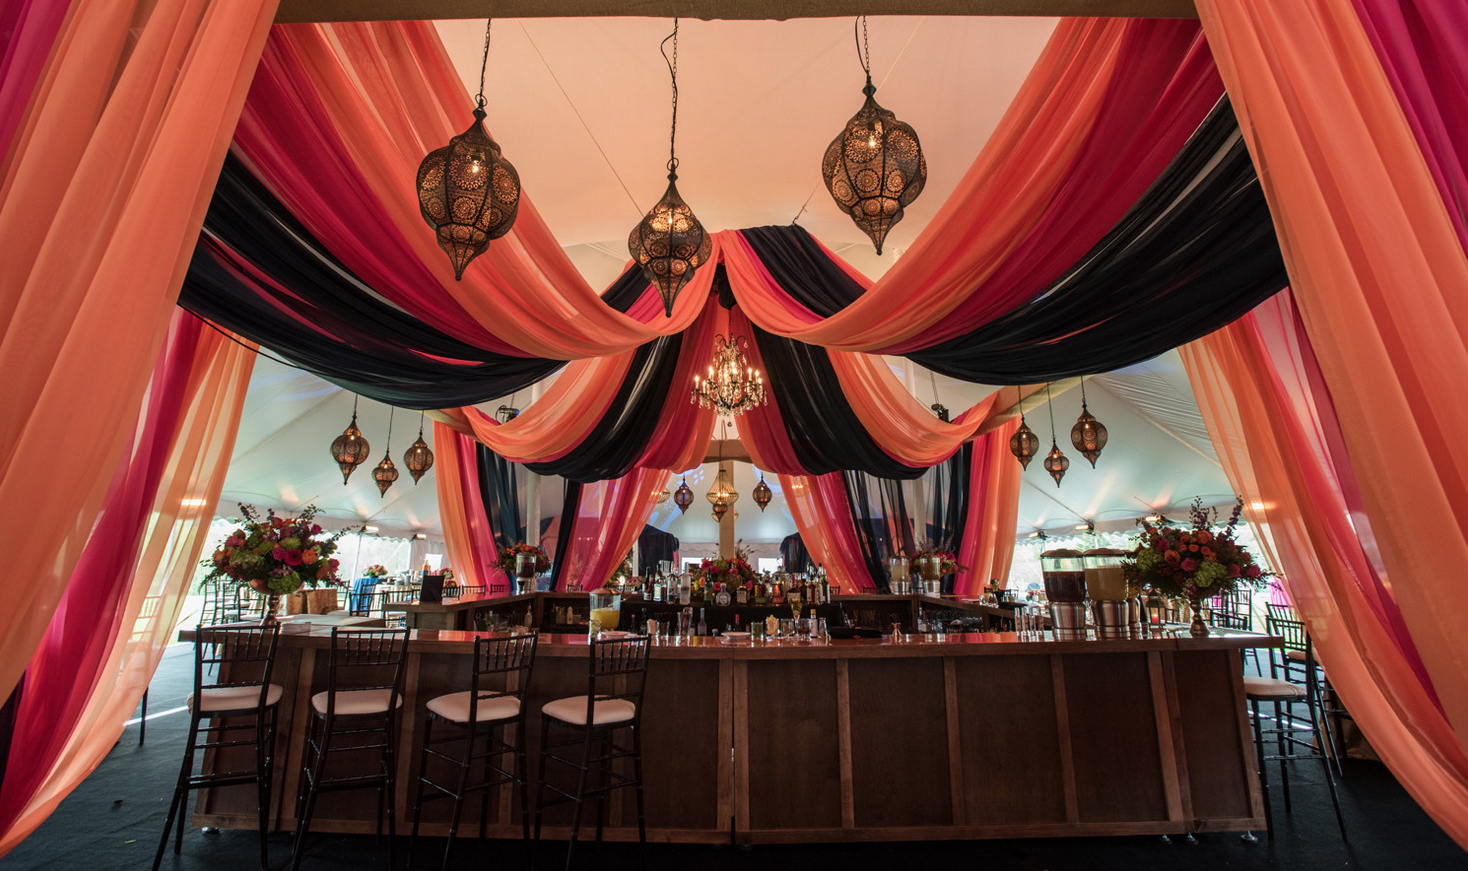 Photo by  Daria Bishop Photography  || Draping by  Let's Pretend Catering  || Rentals by  Vermont Tent Company